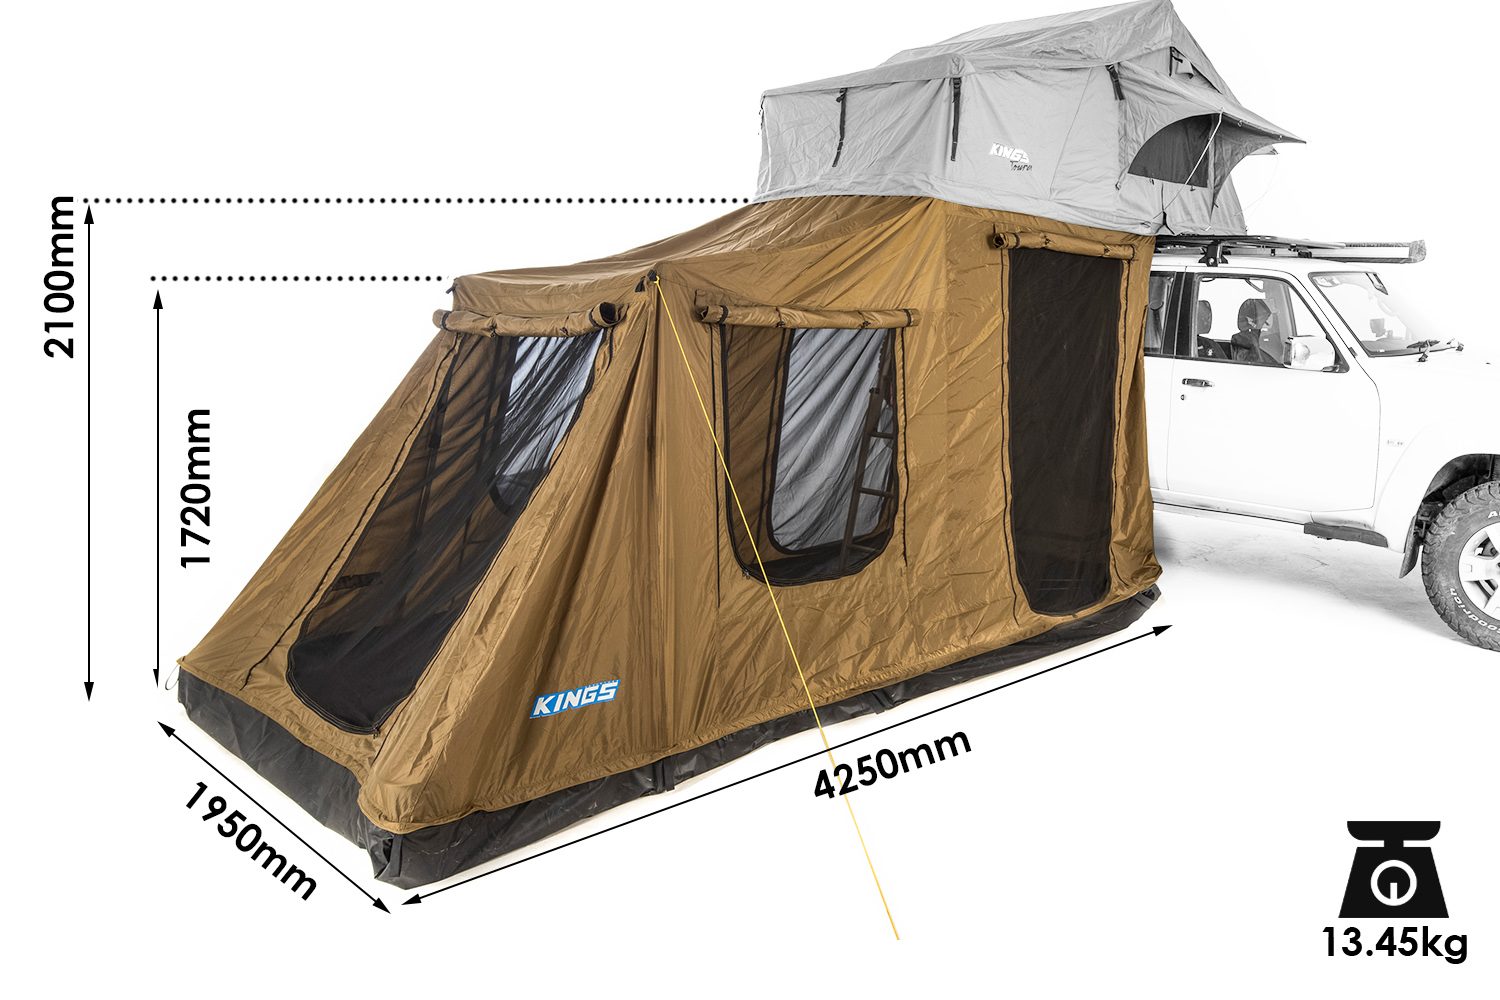 6-Person Annex for Kings Tourer Rooftop Tent | Fully Waterproof | Incl. Enclosed Floor